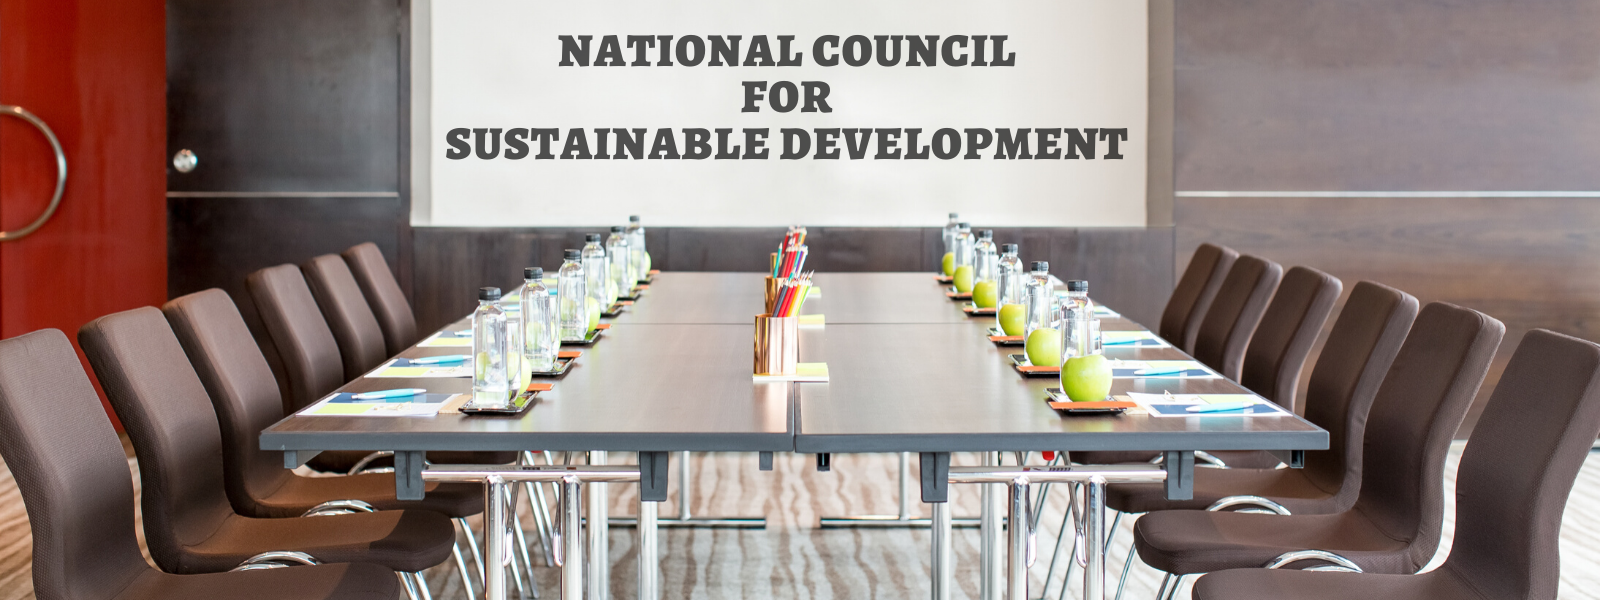 Civil Society Calls For Action On National Council For Sustainable Development